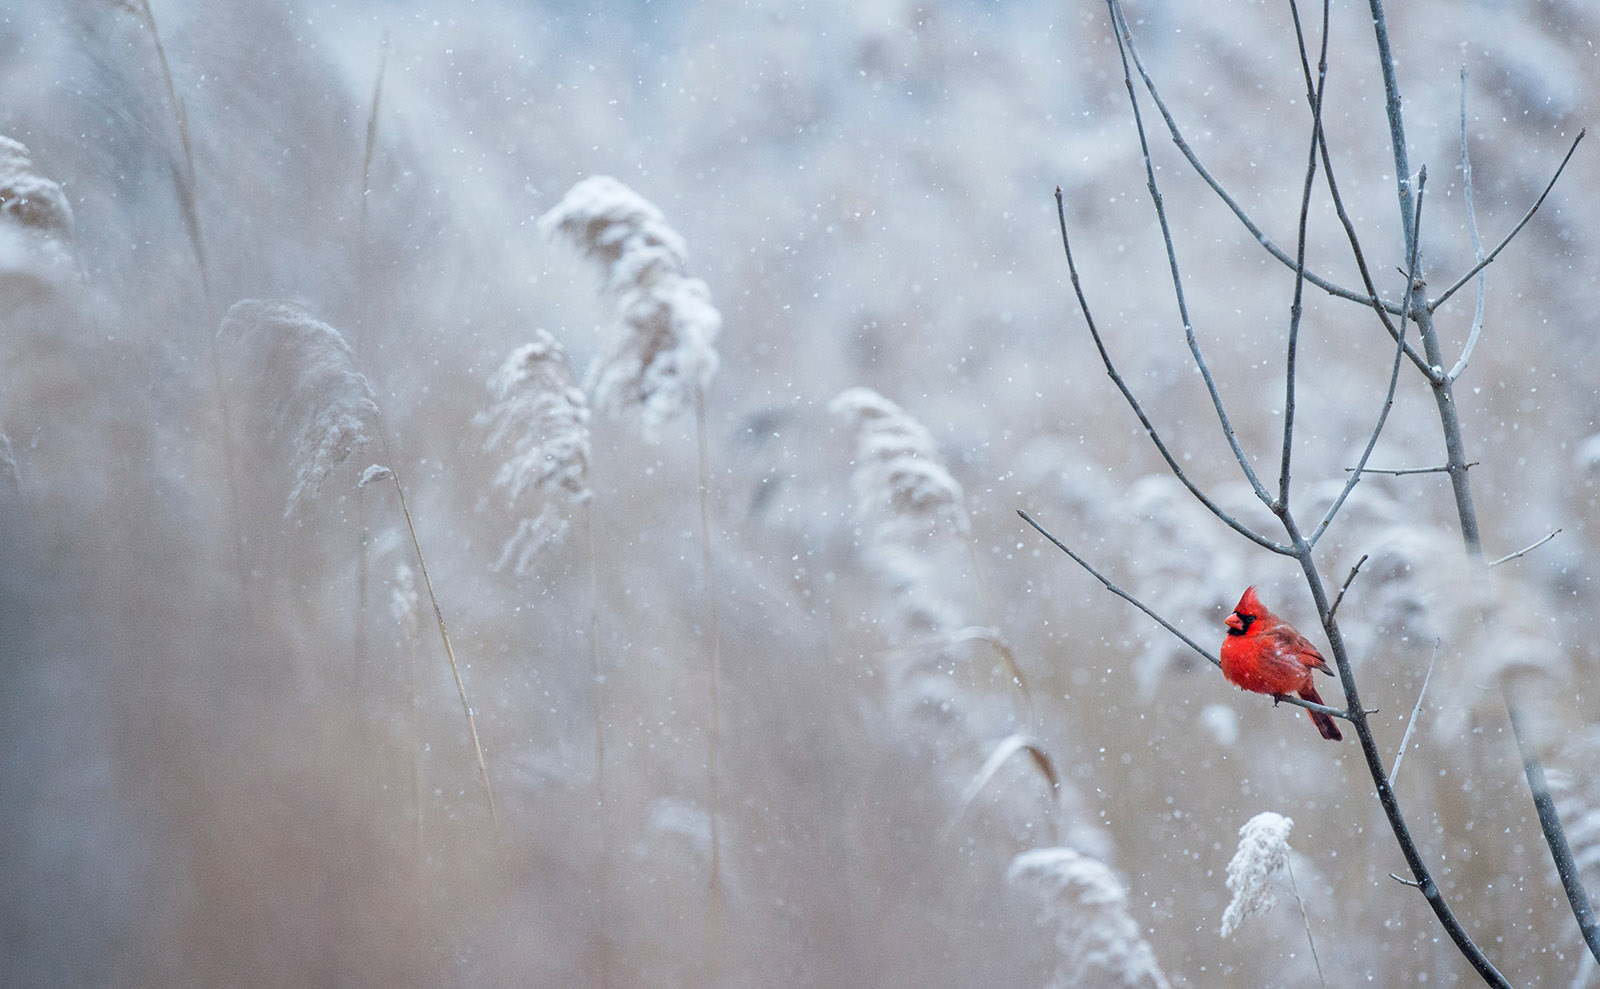 a red cardinal sitting a snowy branch